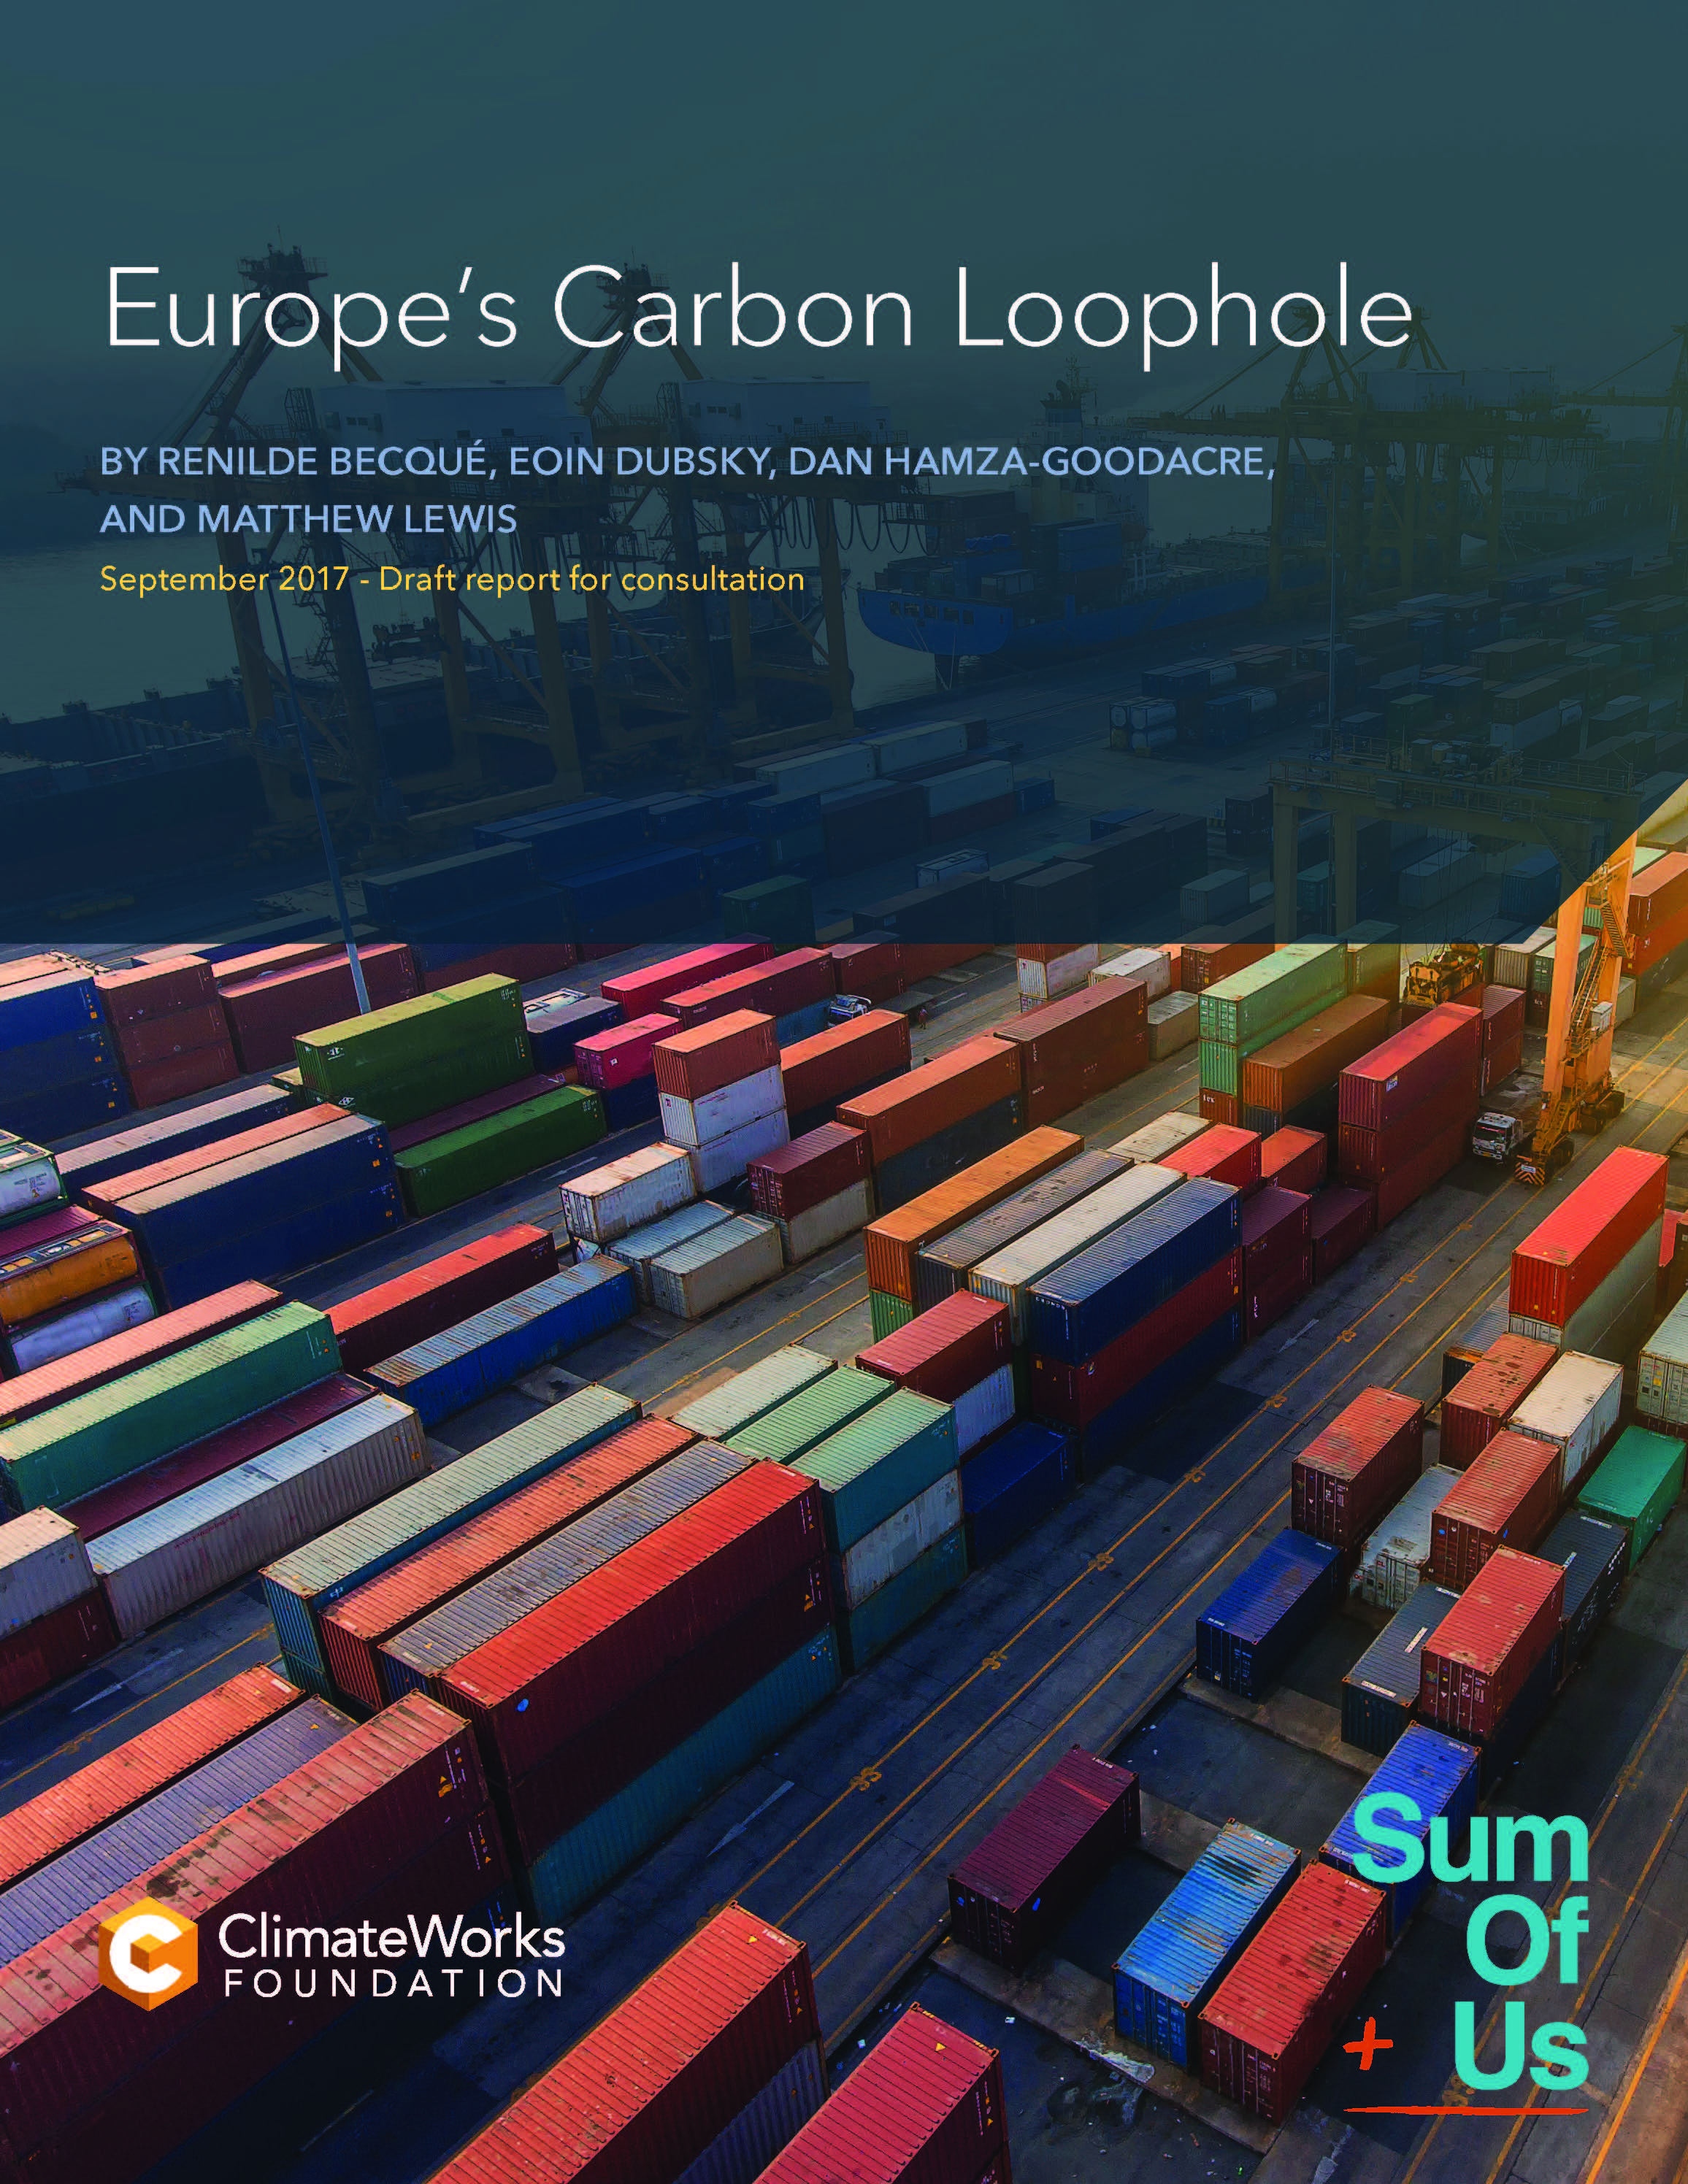 Europe's Carbon Loophole